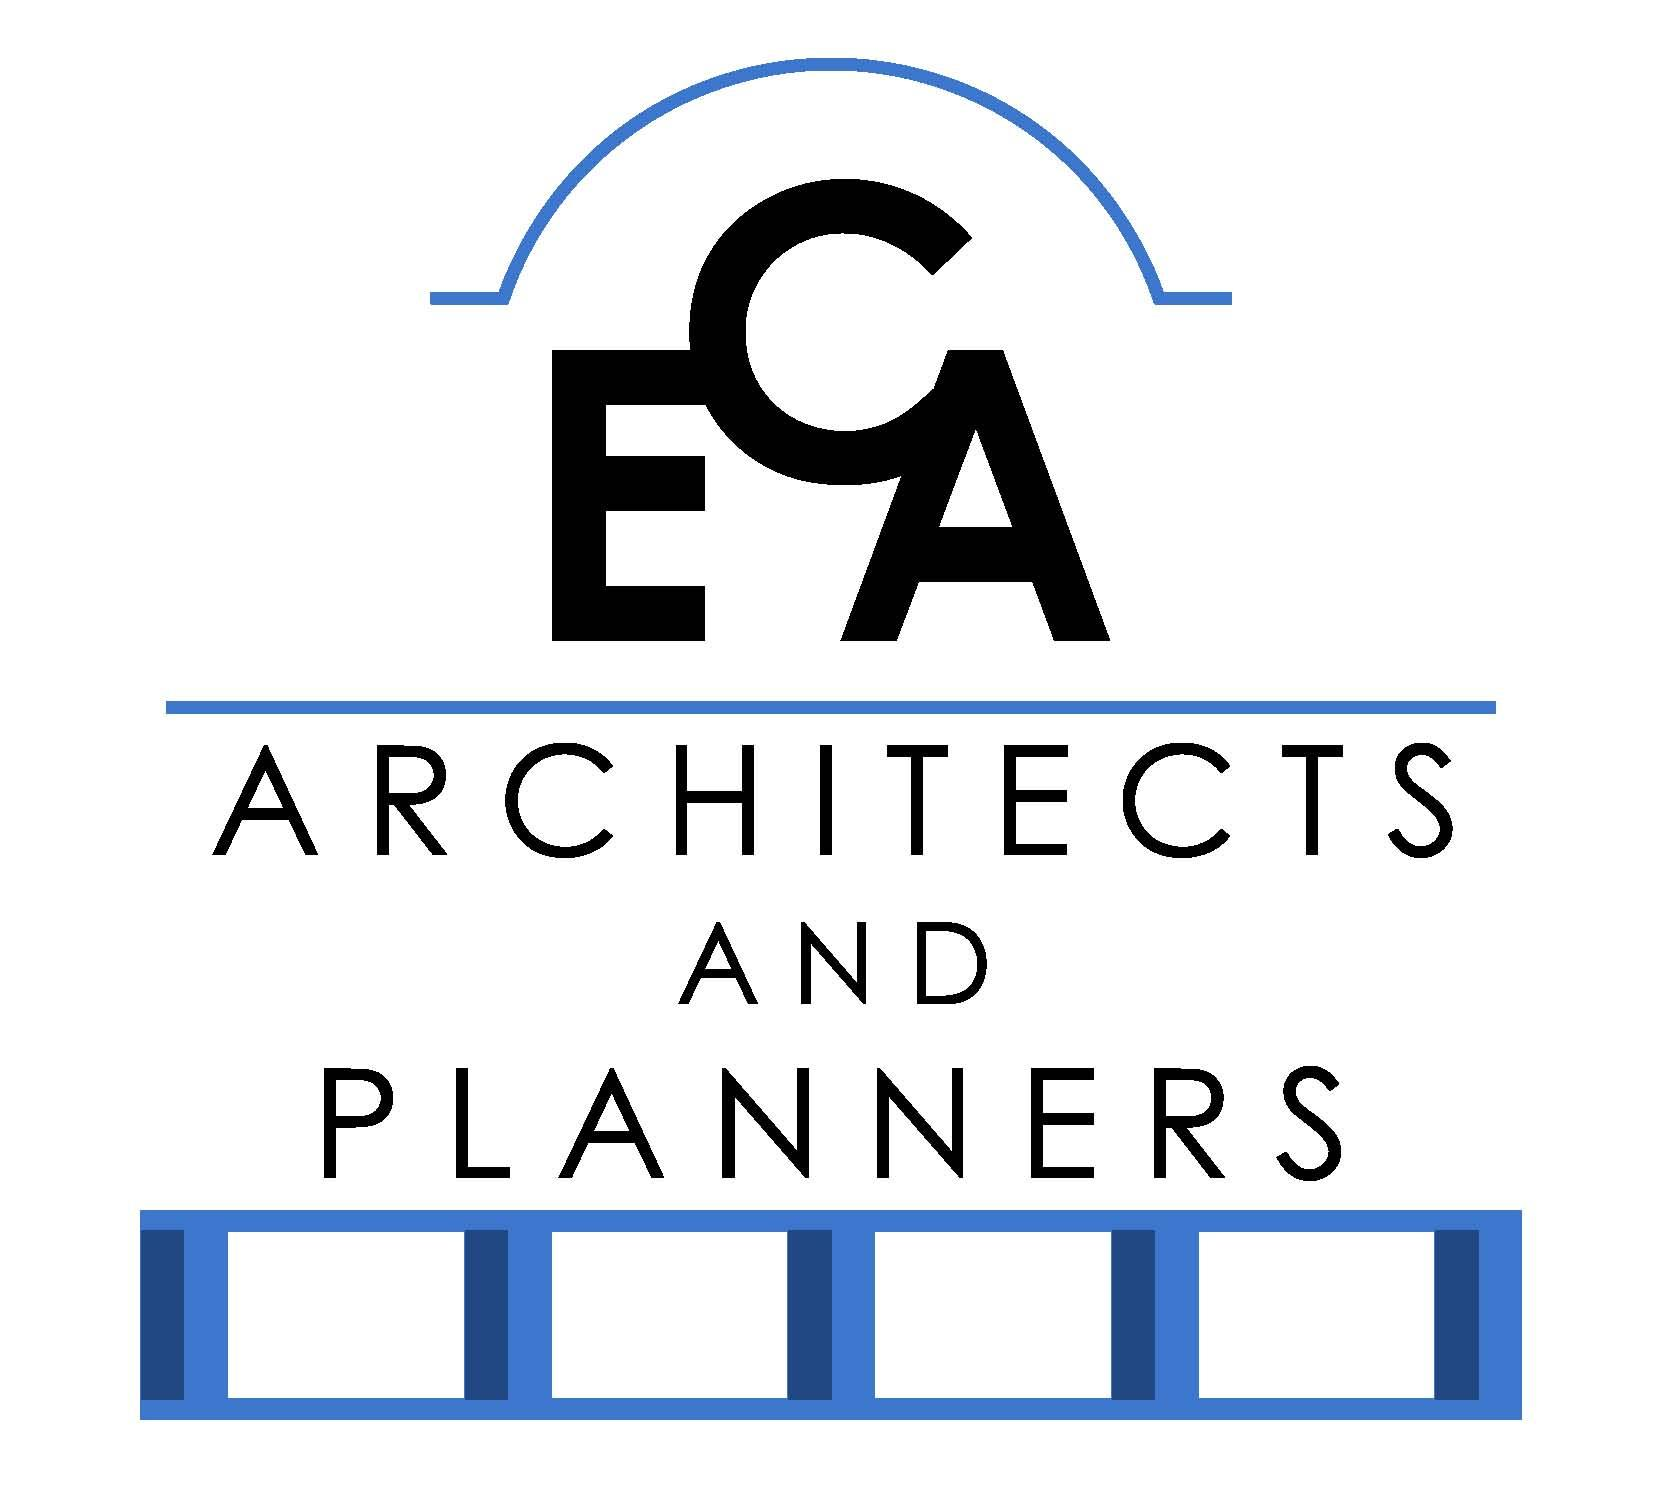 Eca architects and planners coupons near me in geneva for Local residential architects near me